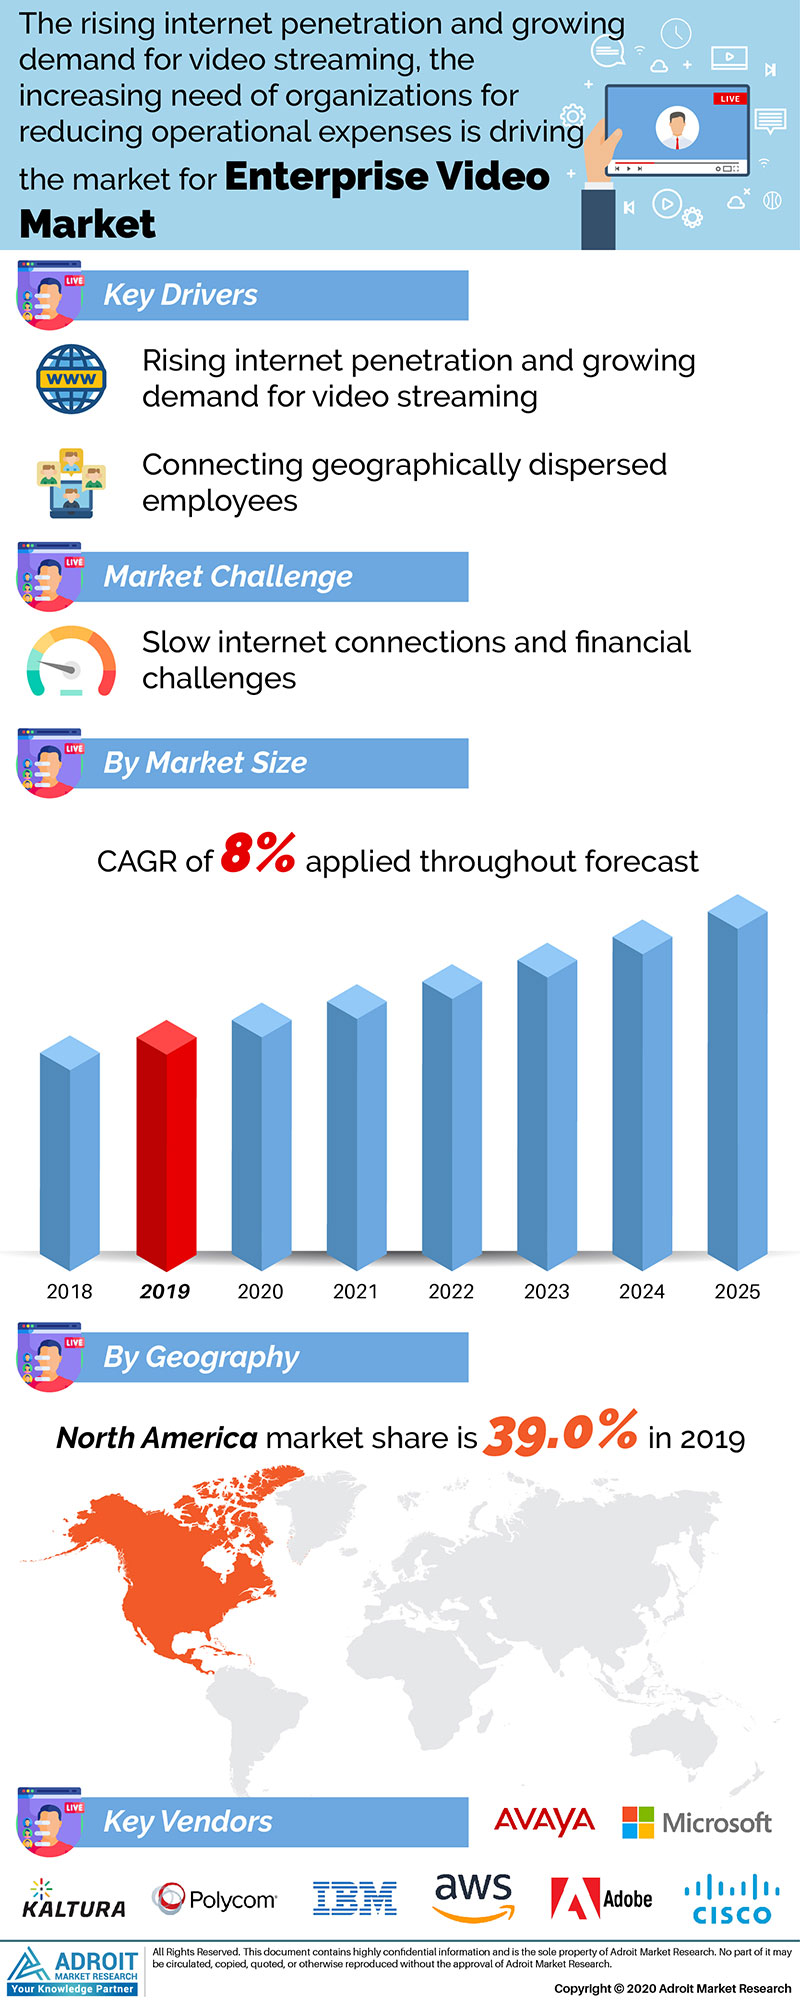 Enterprise Video Market Size 2017 By Application, Product, Region and Forecast 2019 to 2025